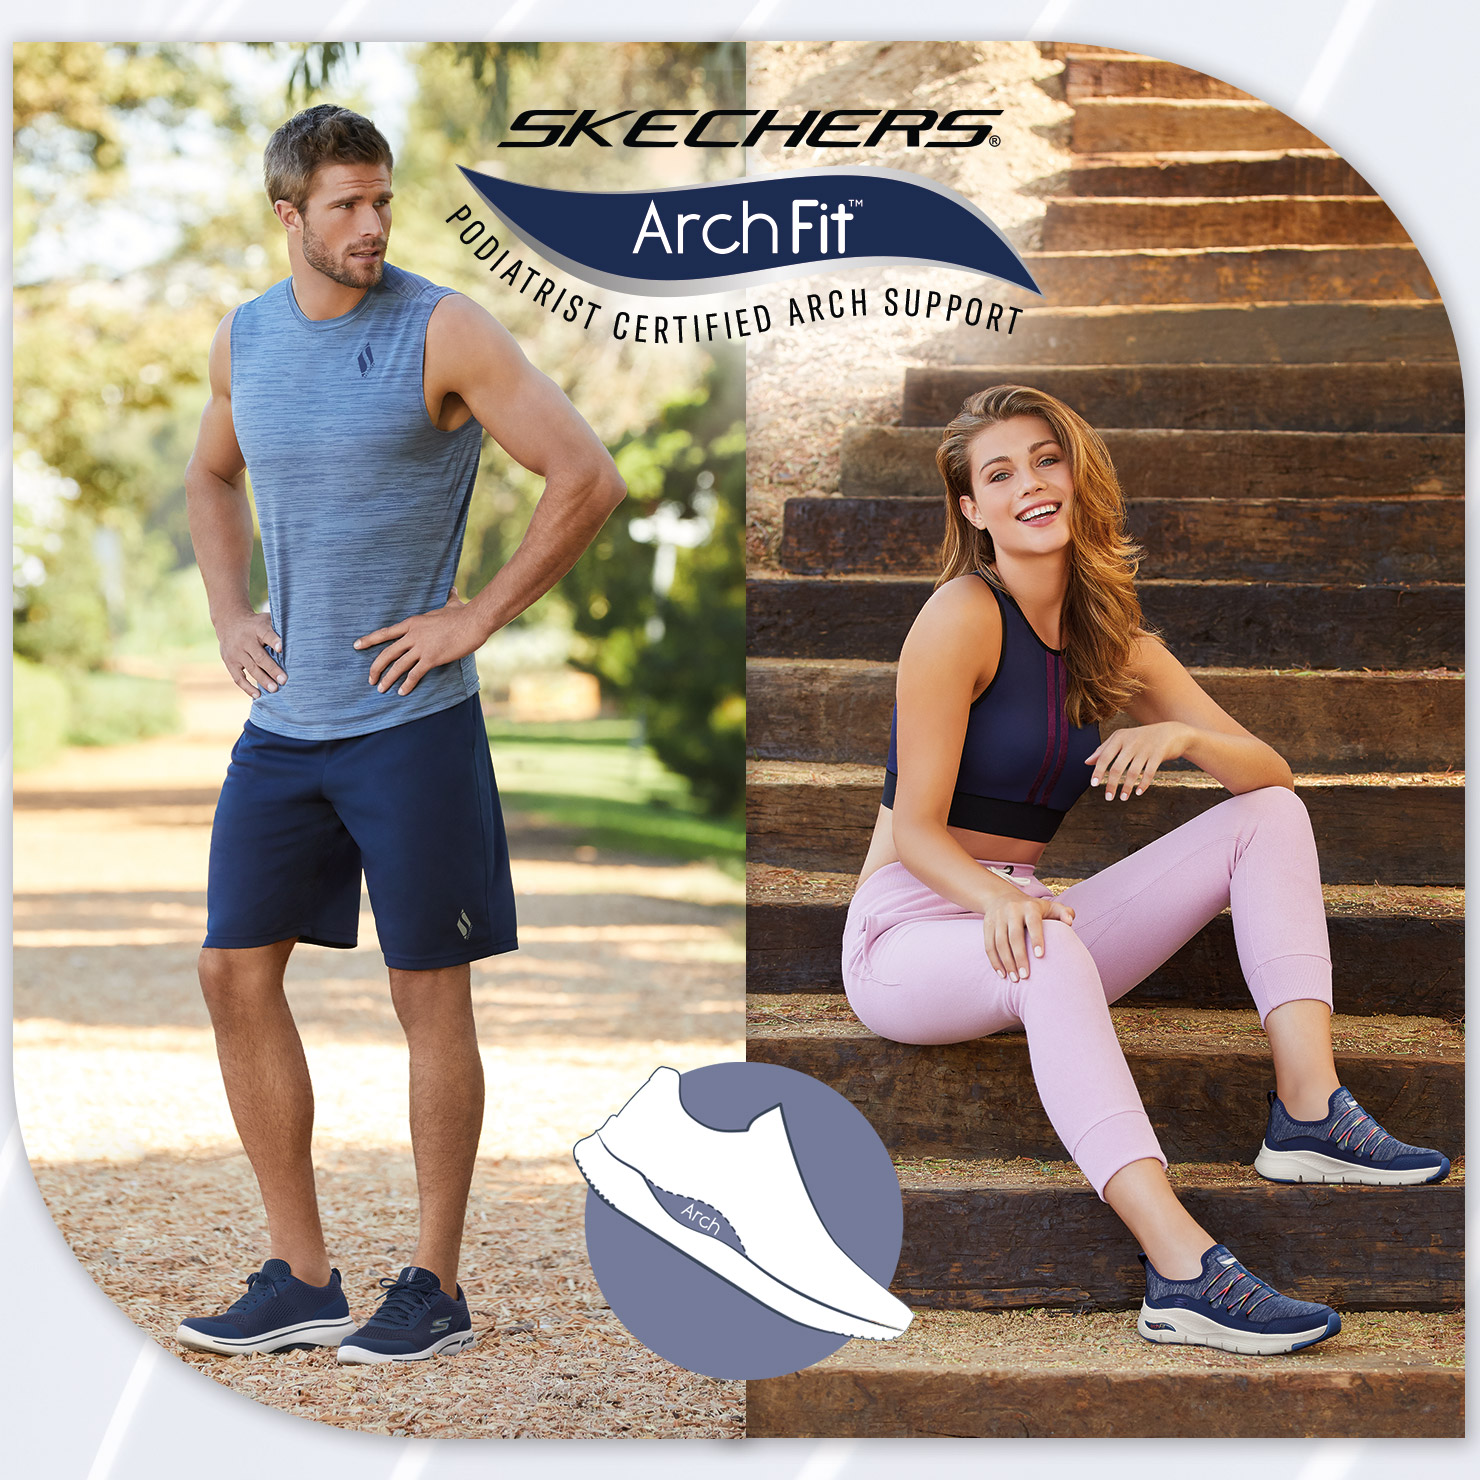 Telégrafo deficiencia al límite  SKECHERS Official UK Site | Shop Shoes, Clothing, & Collections